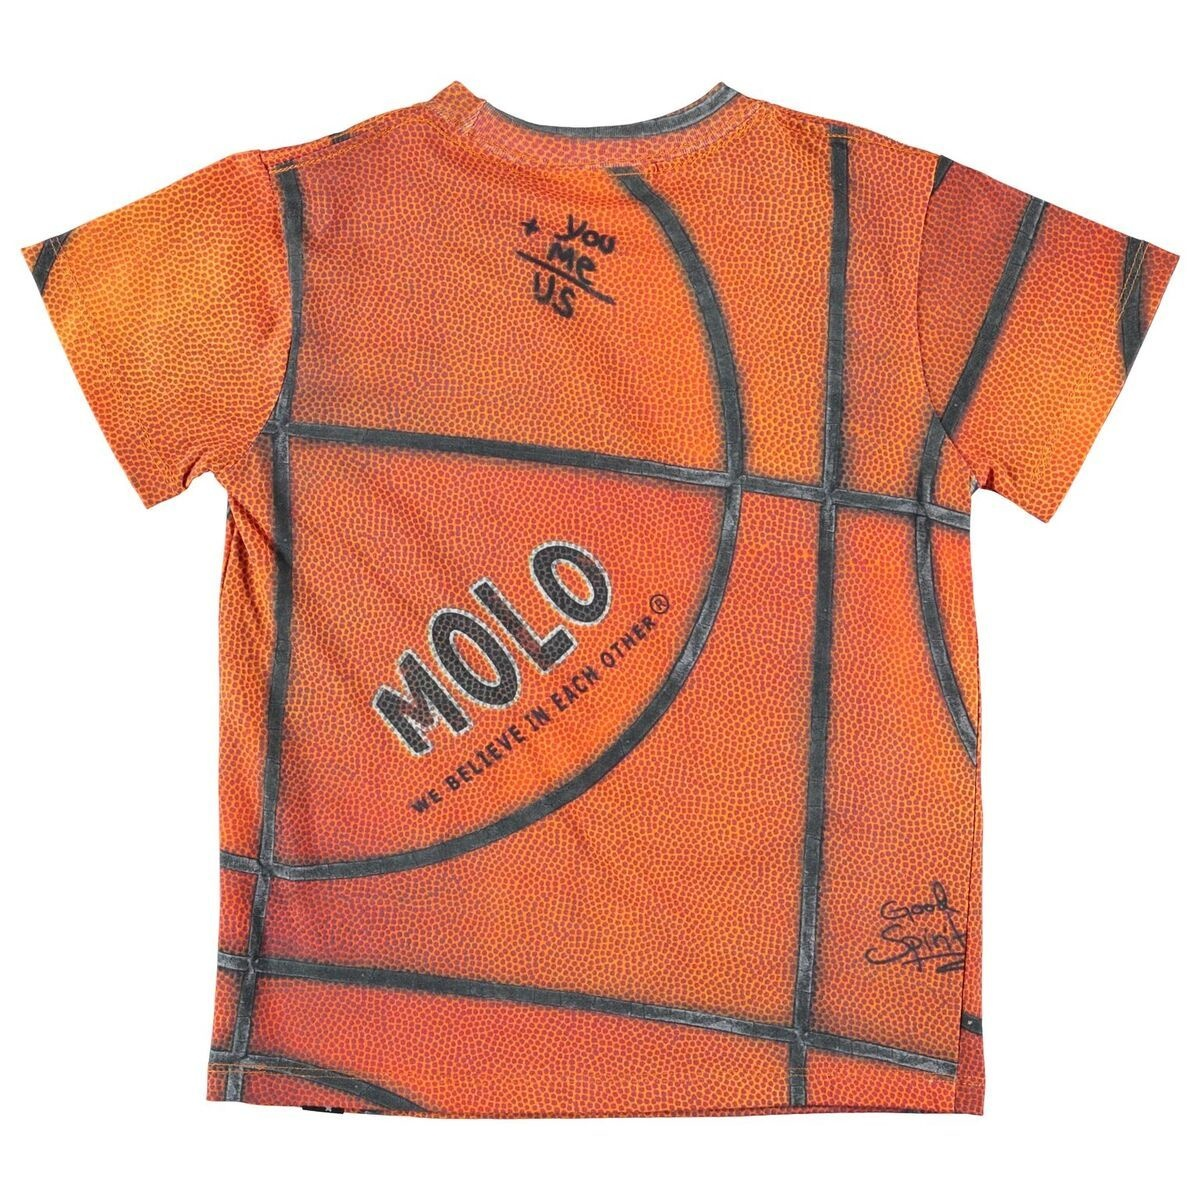 Molo Road tshirt basket structure